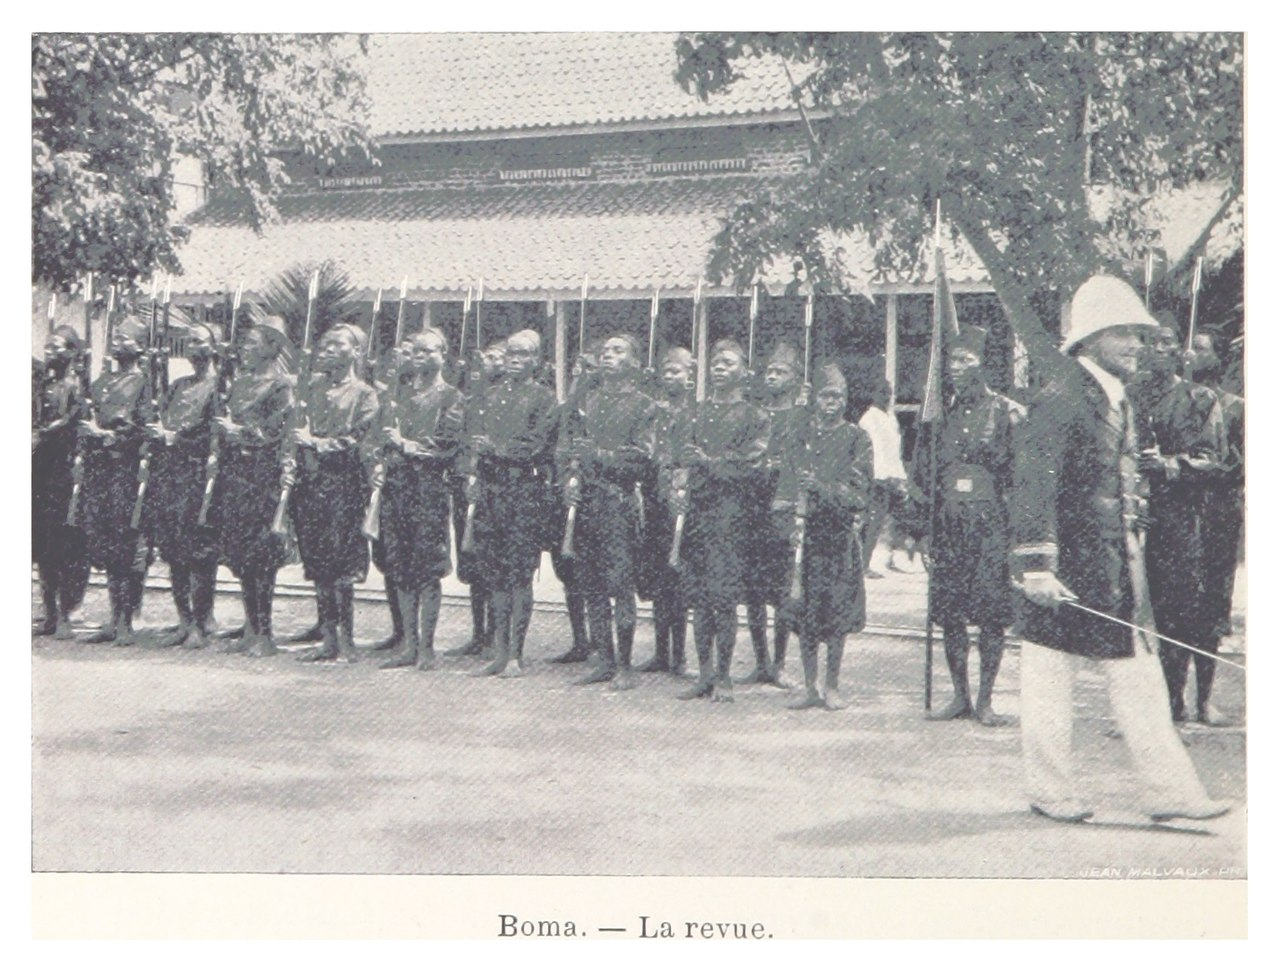 Soldiers of the Force Publique, pictured at Boma in 1899